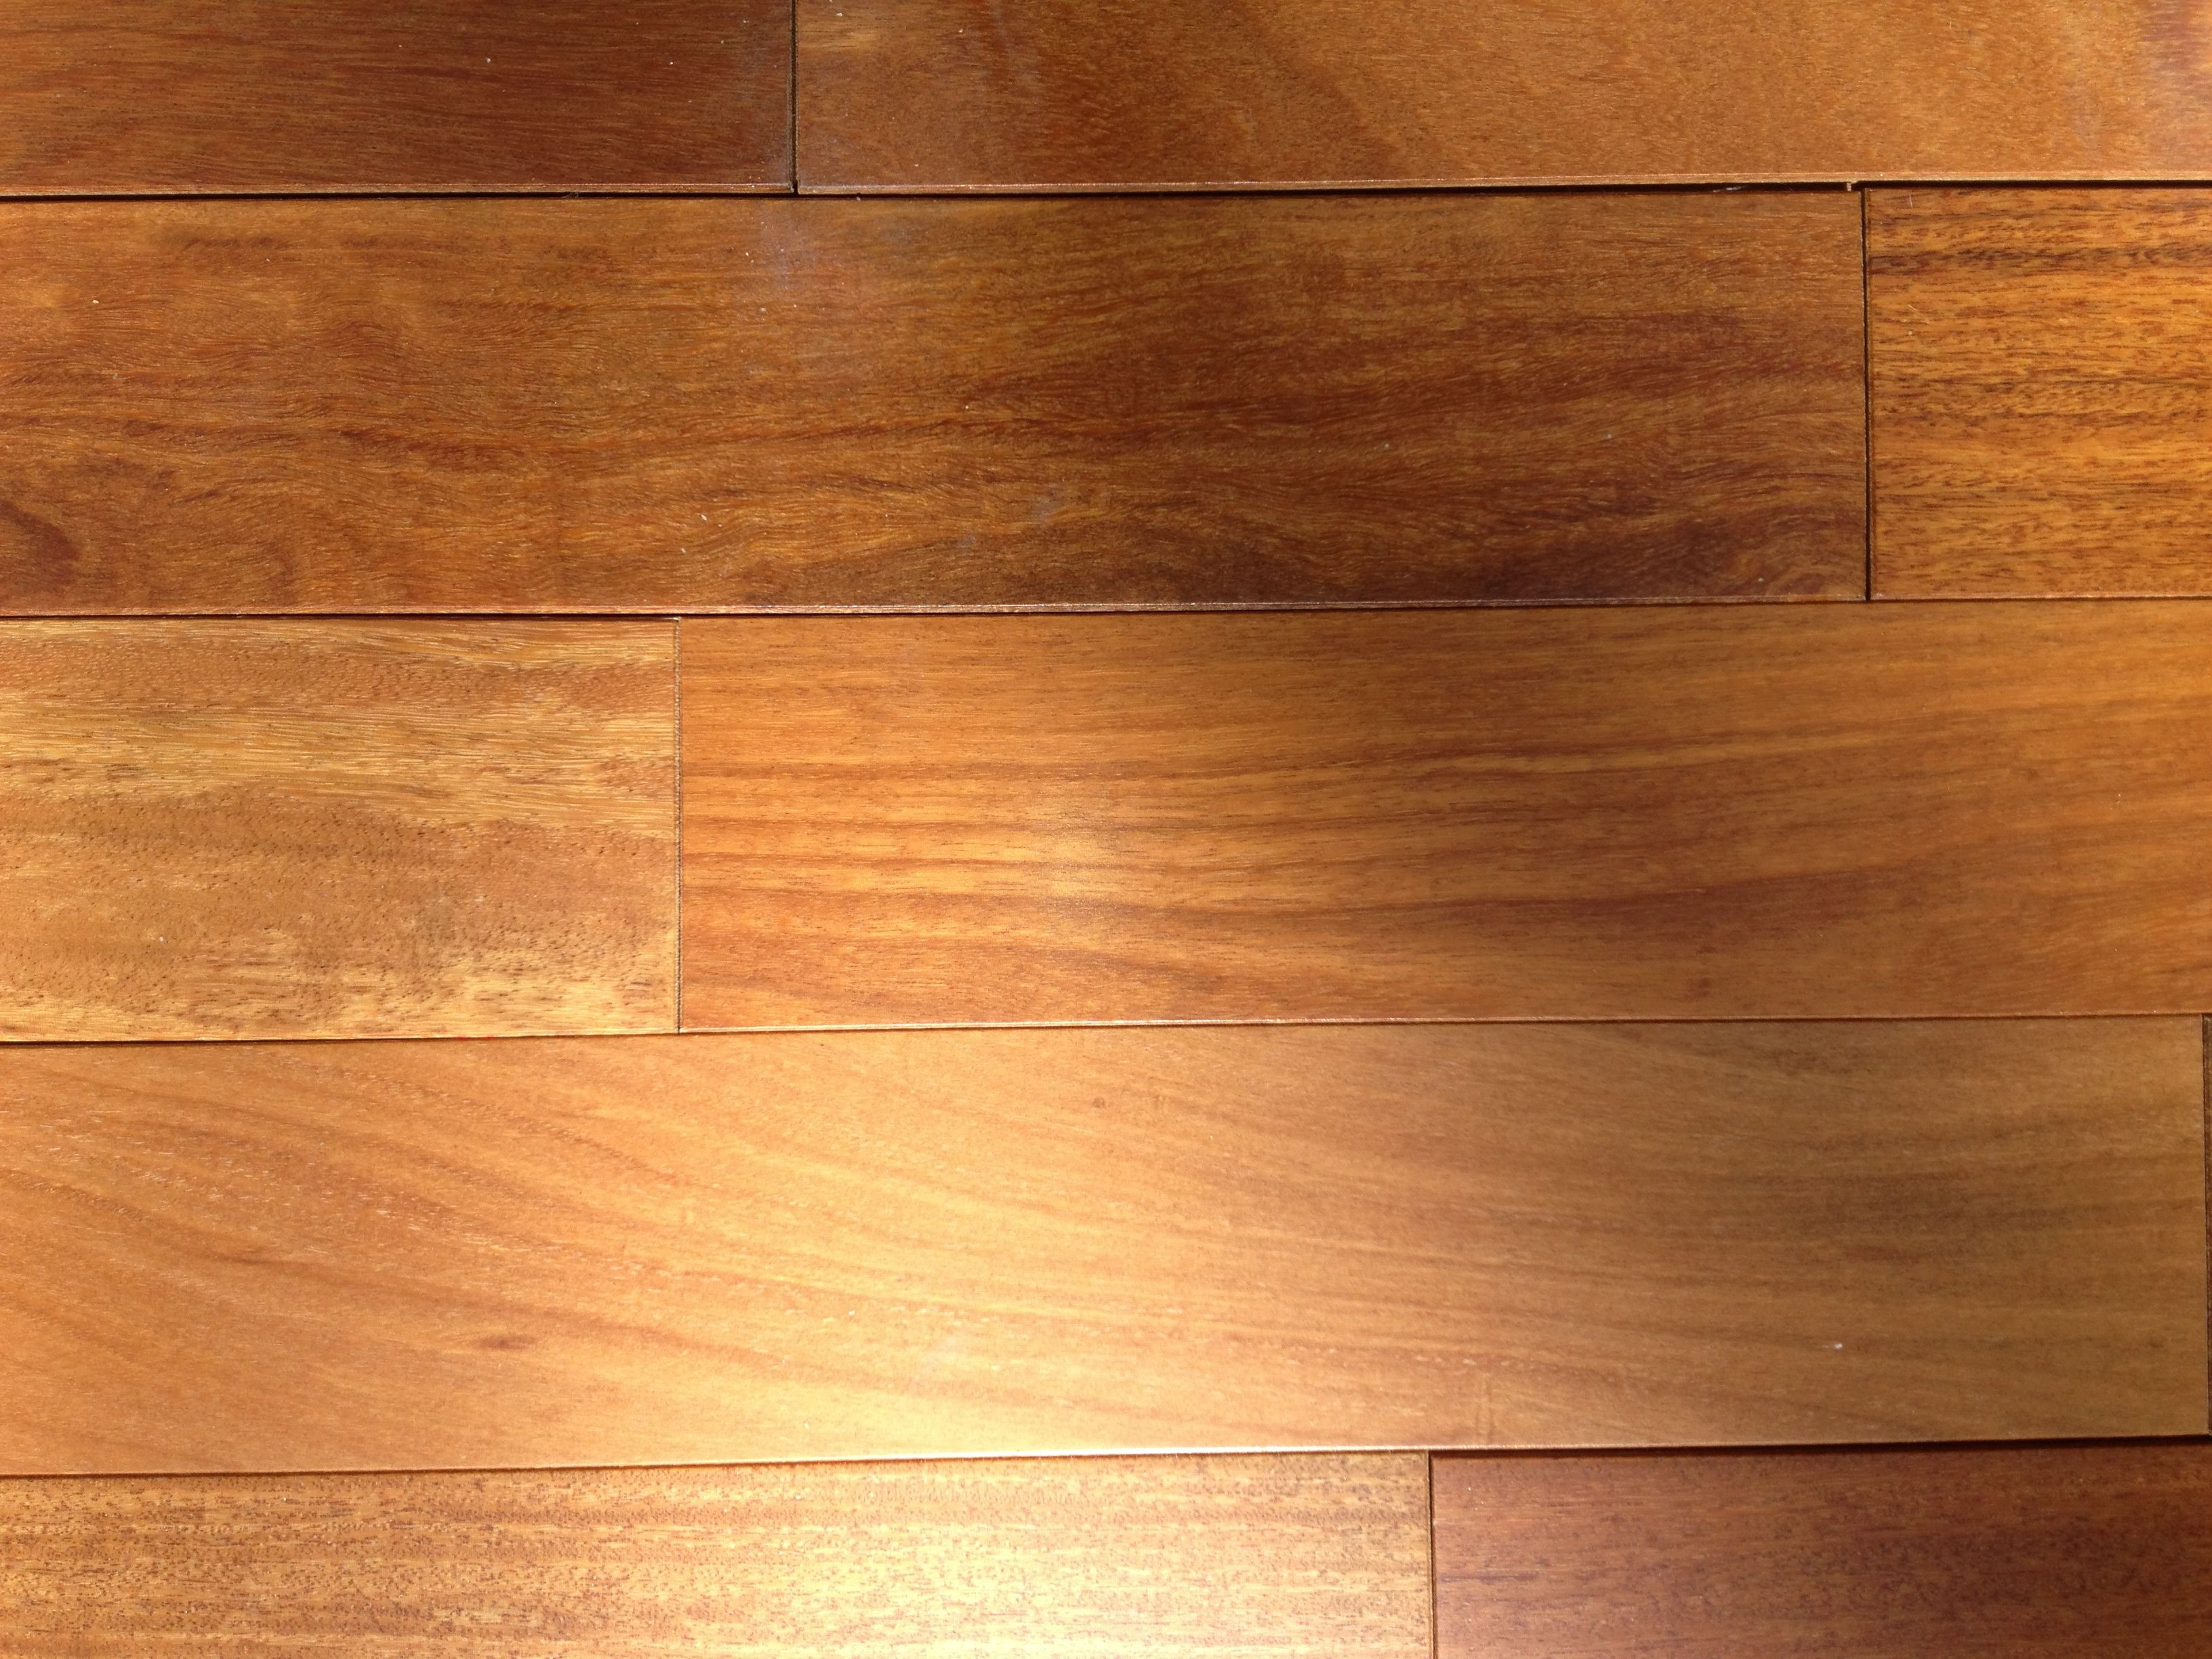 Brazilian Teak Cumaru Hardwood Flooring Unfinished